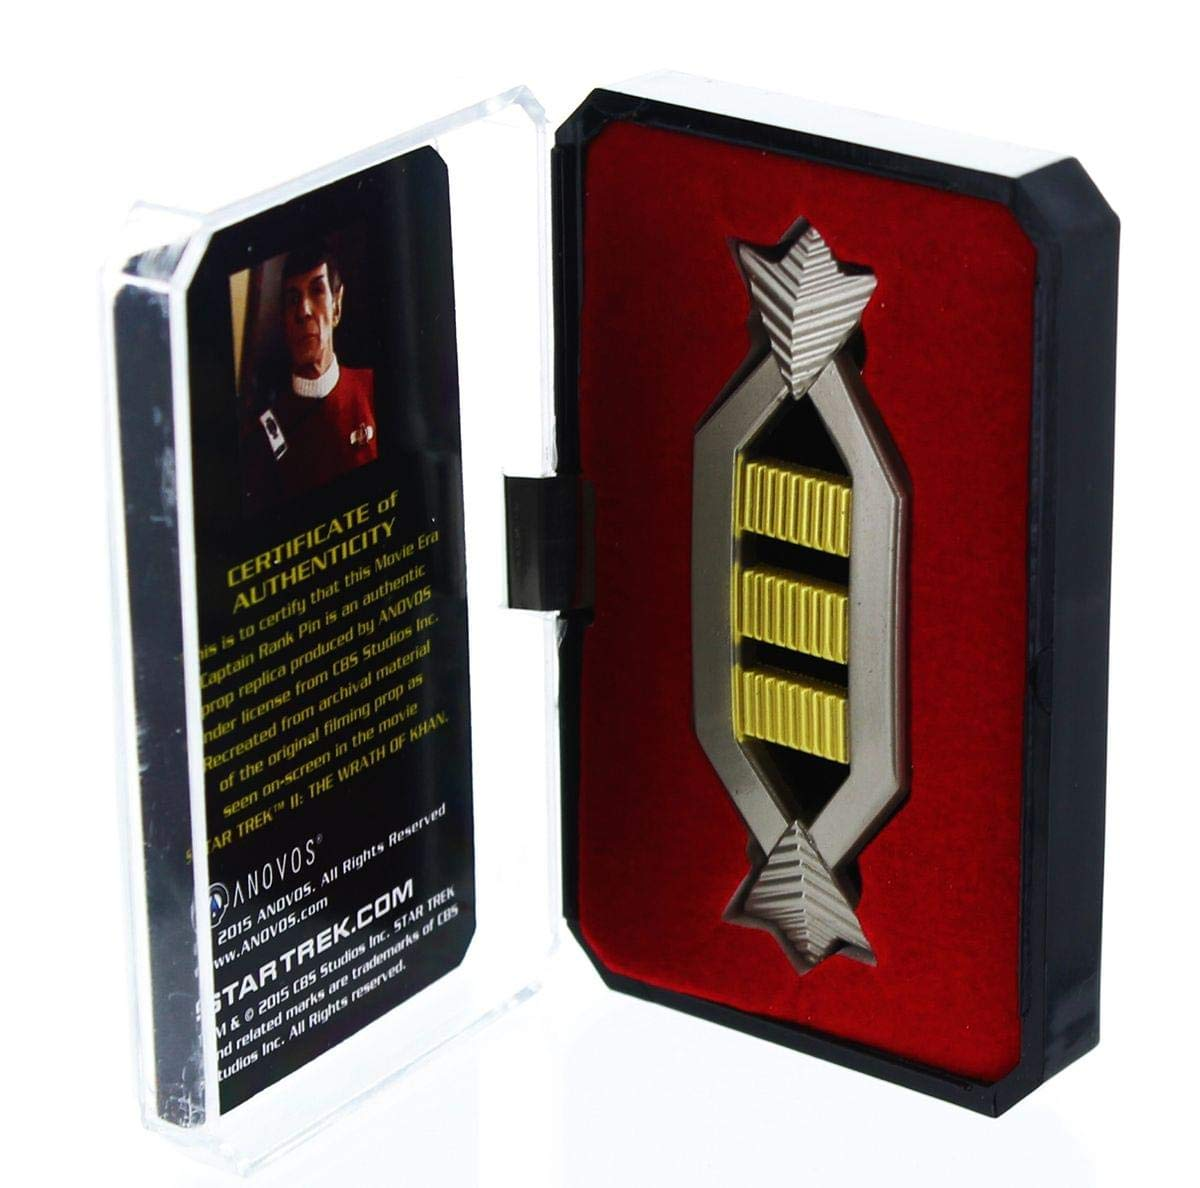 dccf8f08839c18 Star Trek Spock Captain Authentic Rank Pin  Amazon.co.uk  Toys   Games